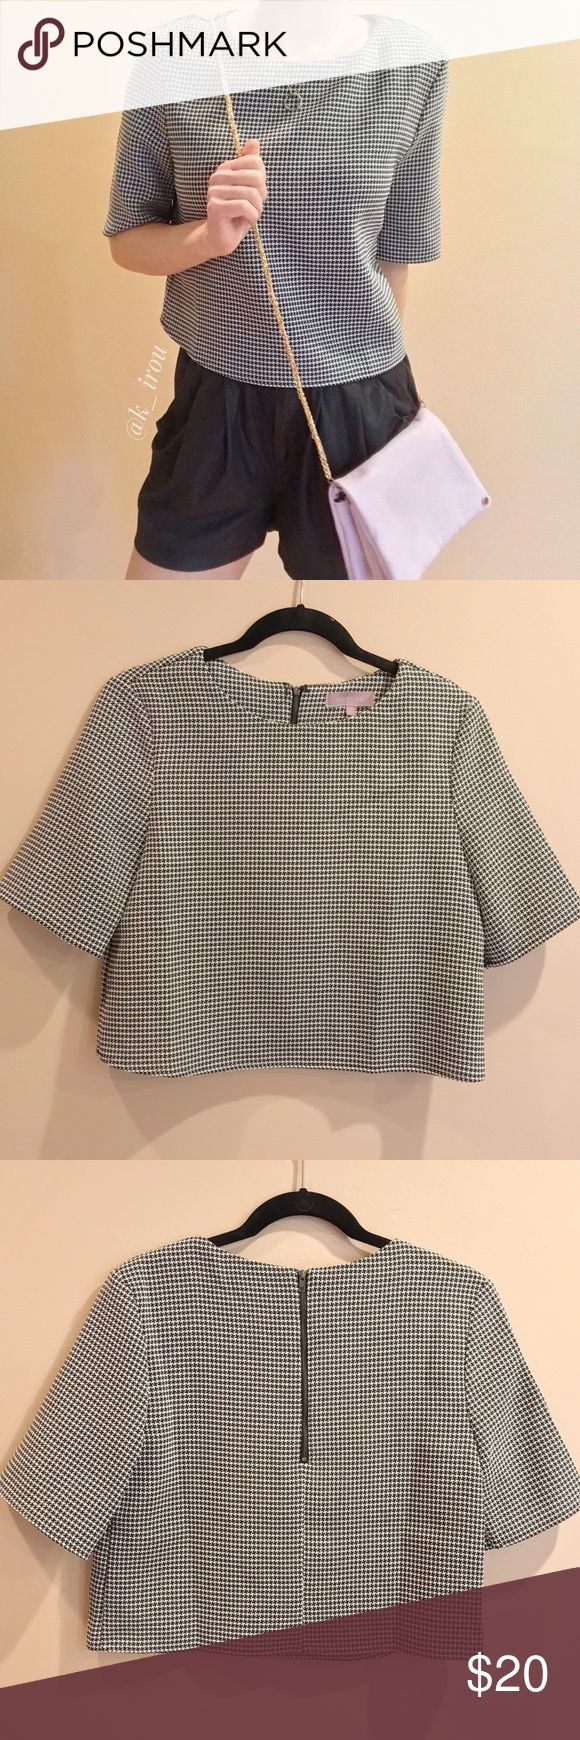 """Harper houndstooth Crop Top Worn just once. In great used condition. Half zip on the back side. It's size small but fits little loose like it fits like size M. Model is 5'2"""" 115lbs wearing this size small crop top with some black leather shorts. ( I also have this cross body purse on sale in my other listing. Price is for this crop top only) ❌trade ❌hold ✅bundle discount Harper Tops Crop Tops"""